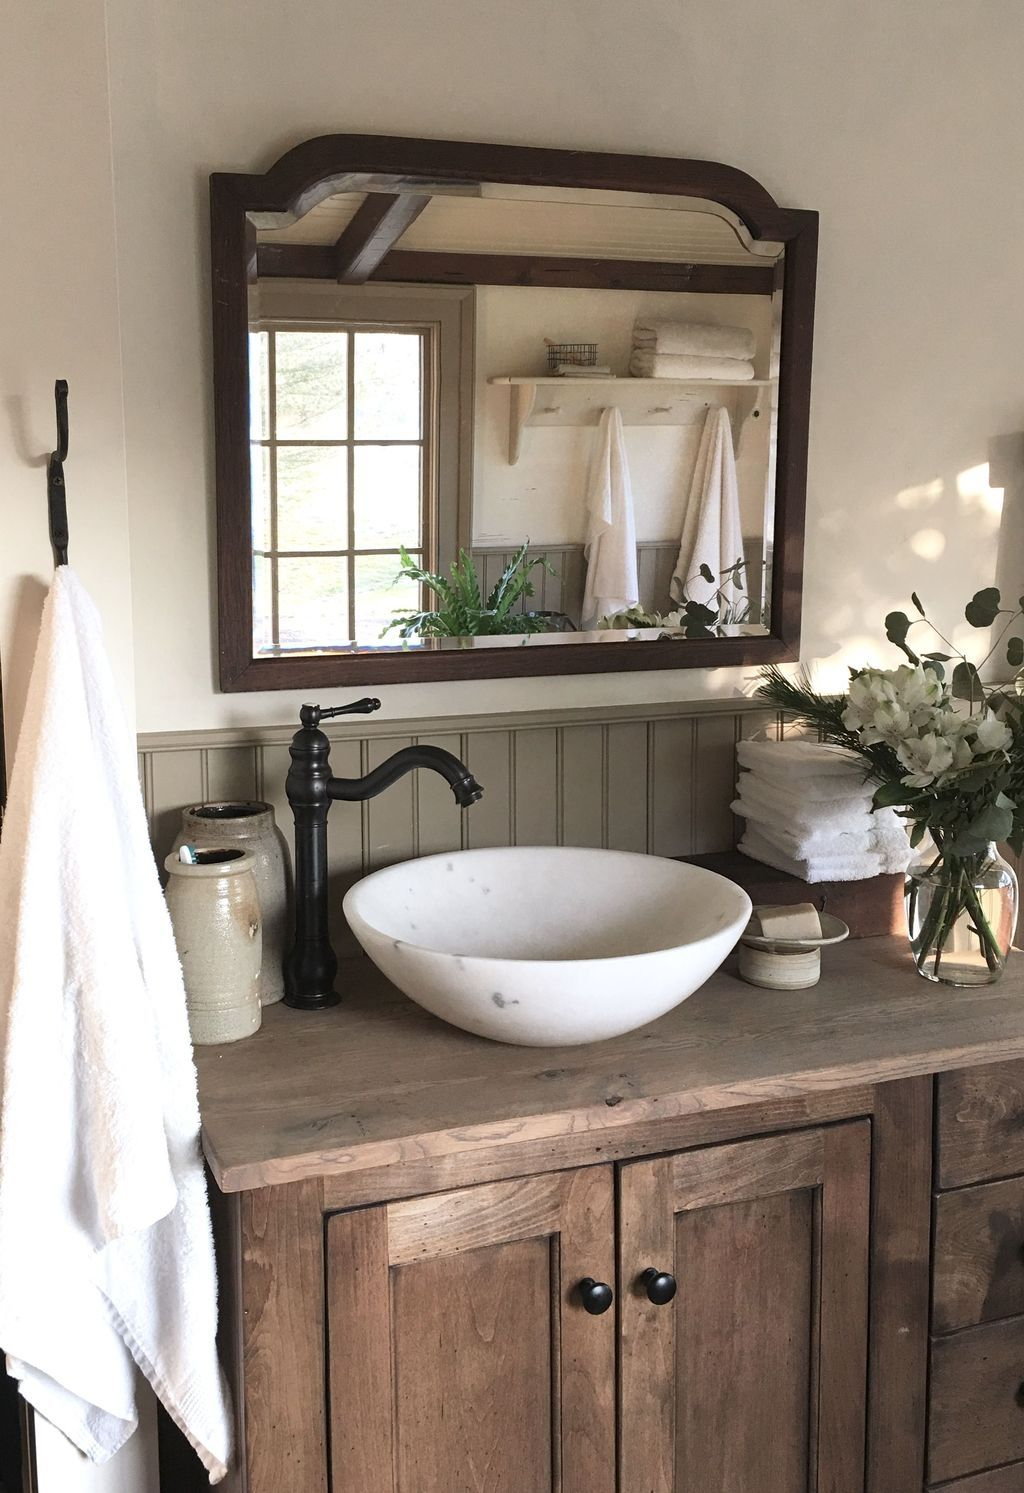 25 Cozy Rustic Bathroom Decor To Guide Your Renovation - W10